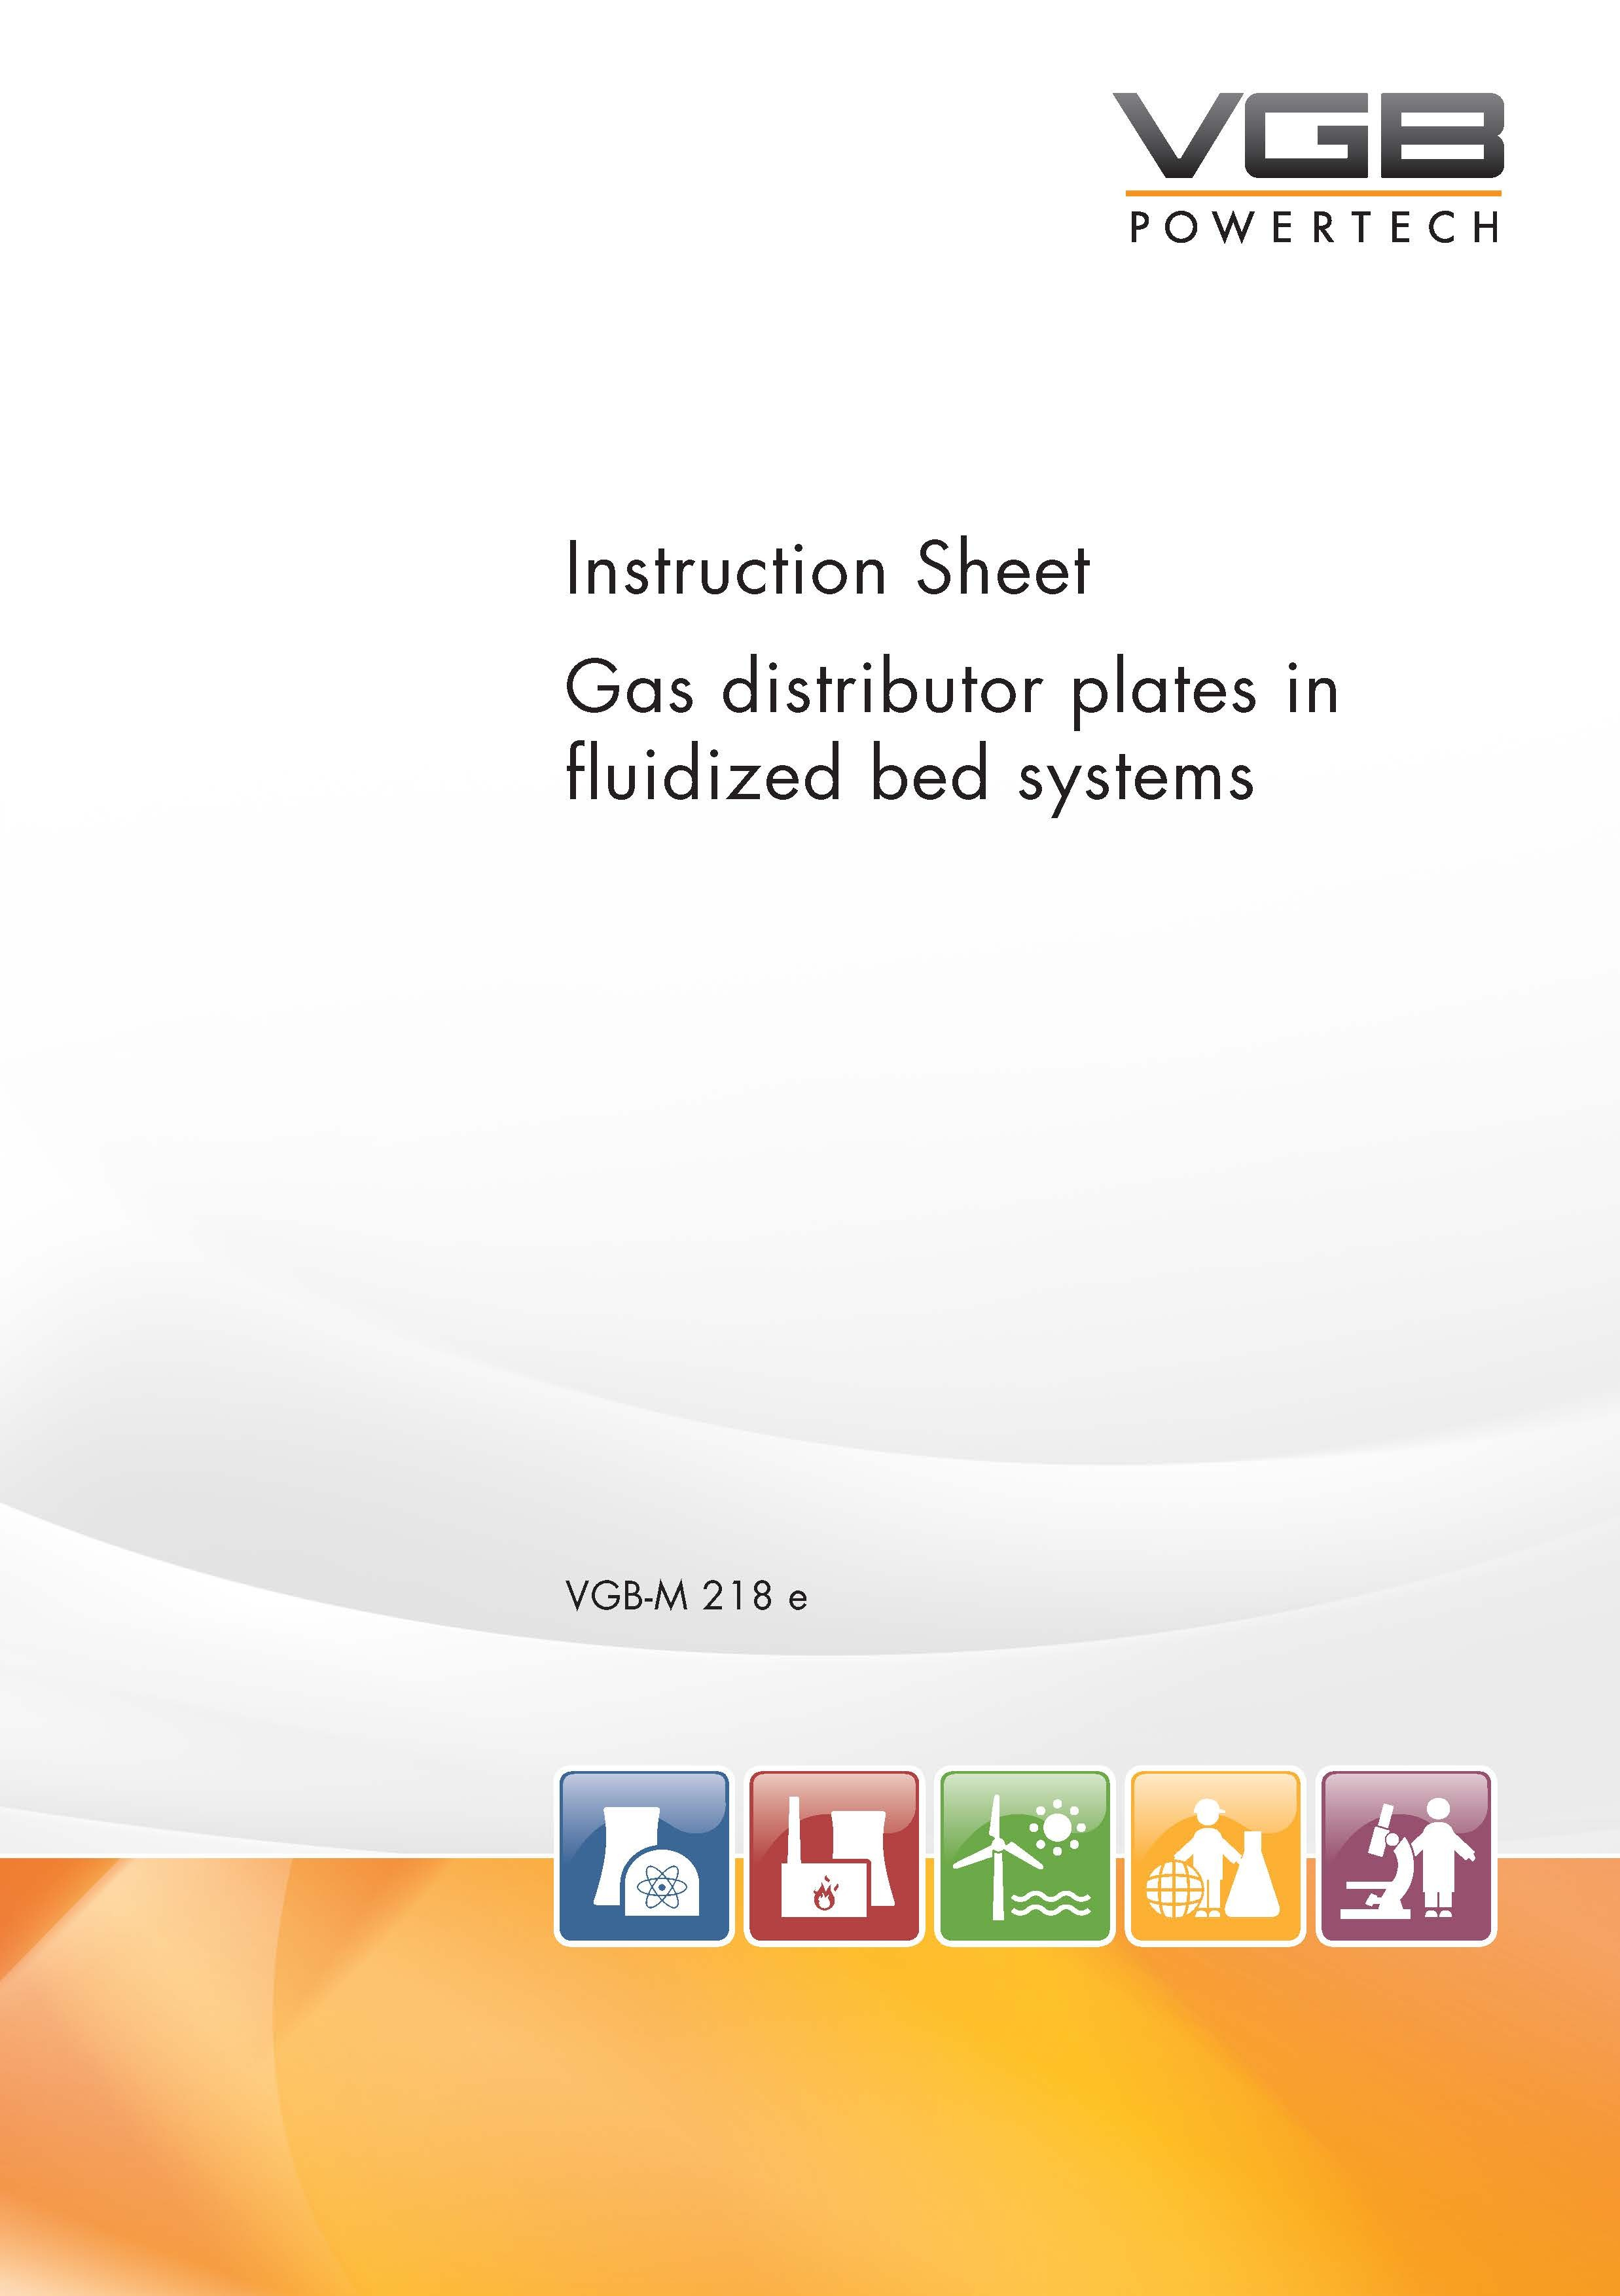 Gas distributor plates in fluidized bed systems